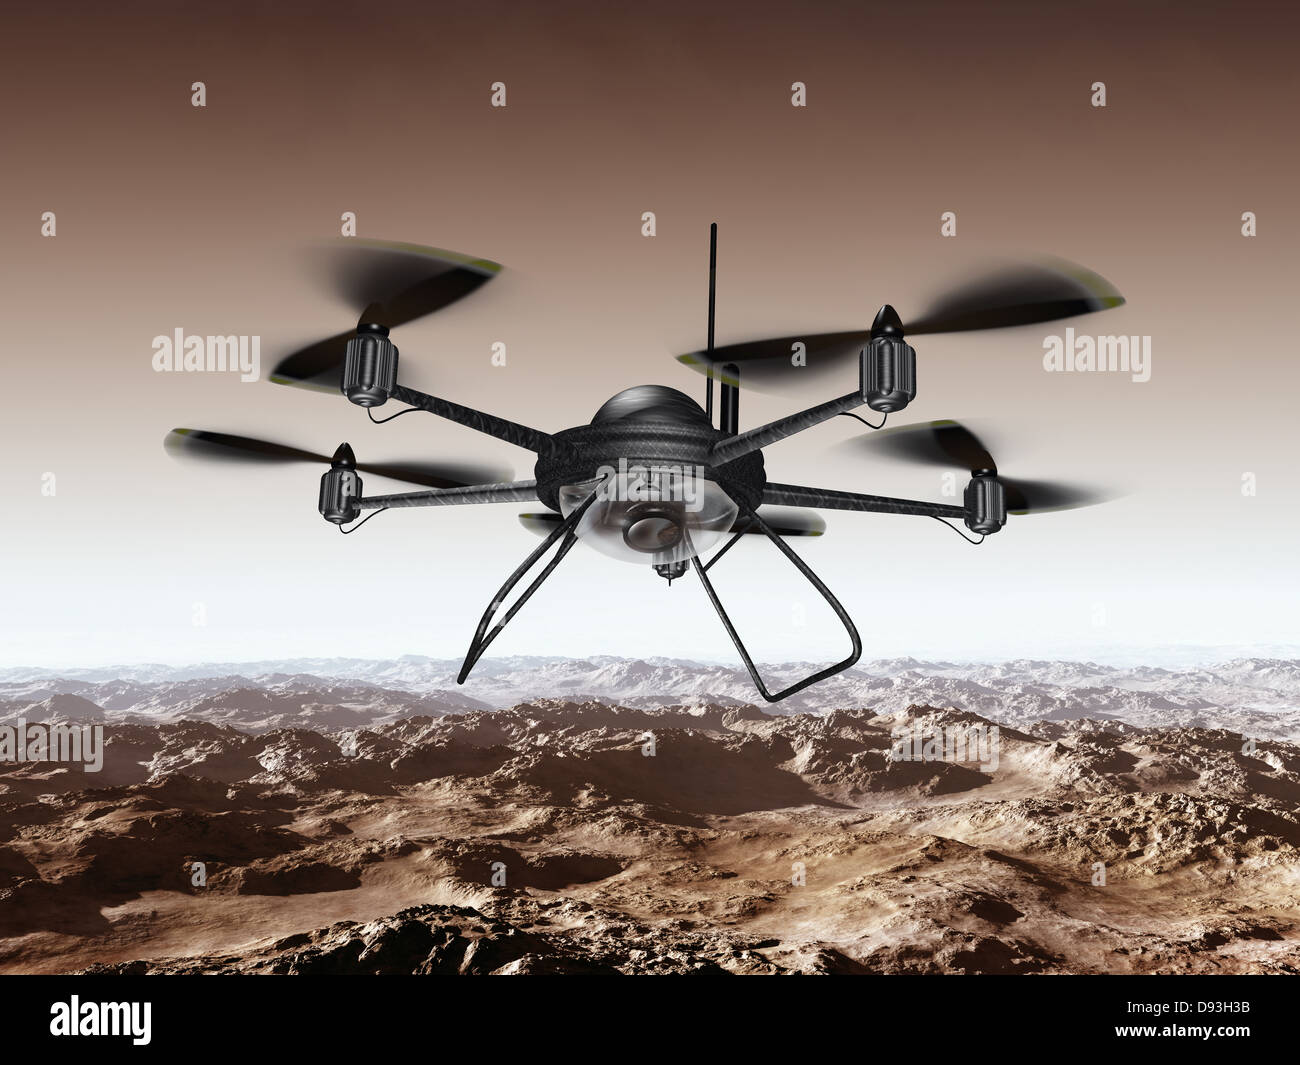 Illustration of a spy drone scanning a mountainous region - Stock Image